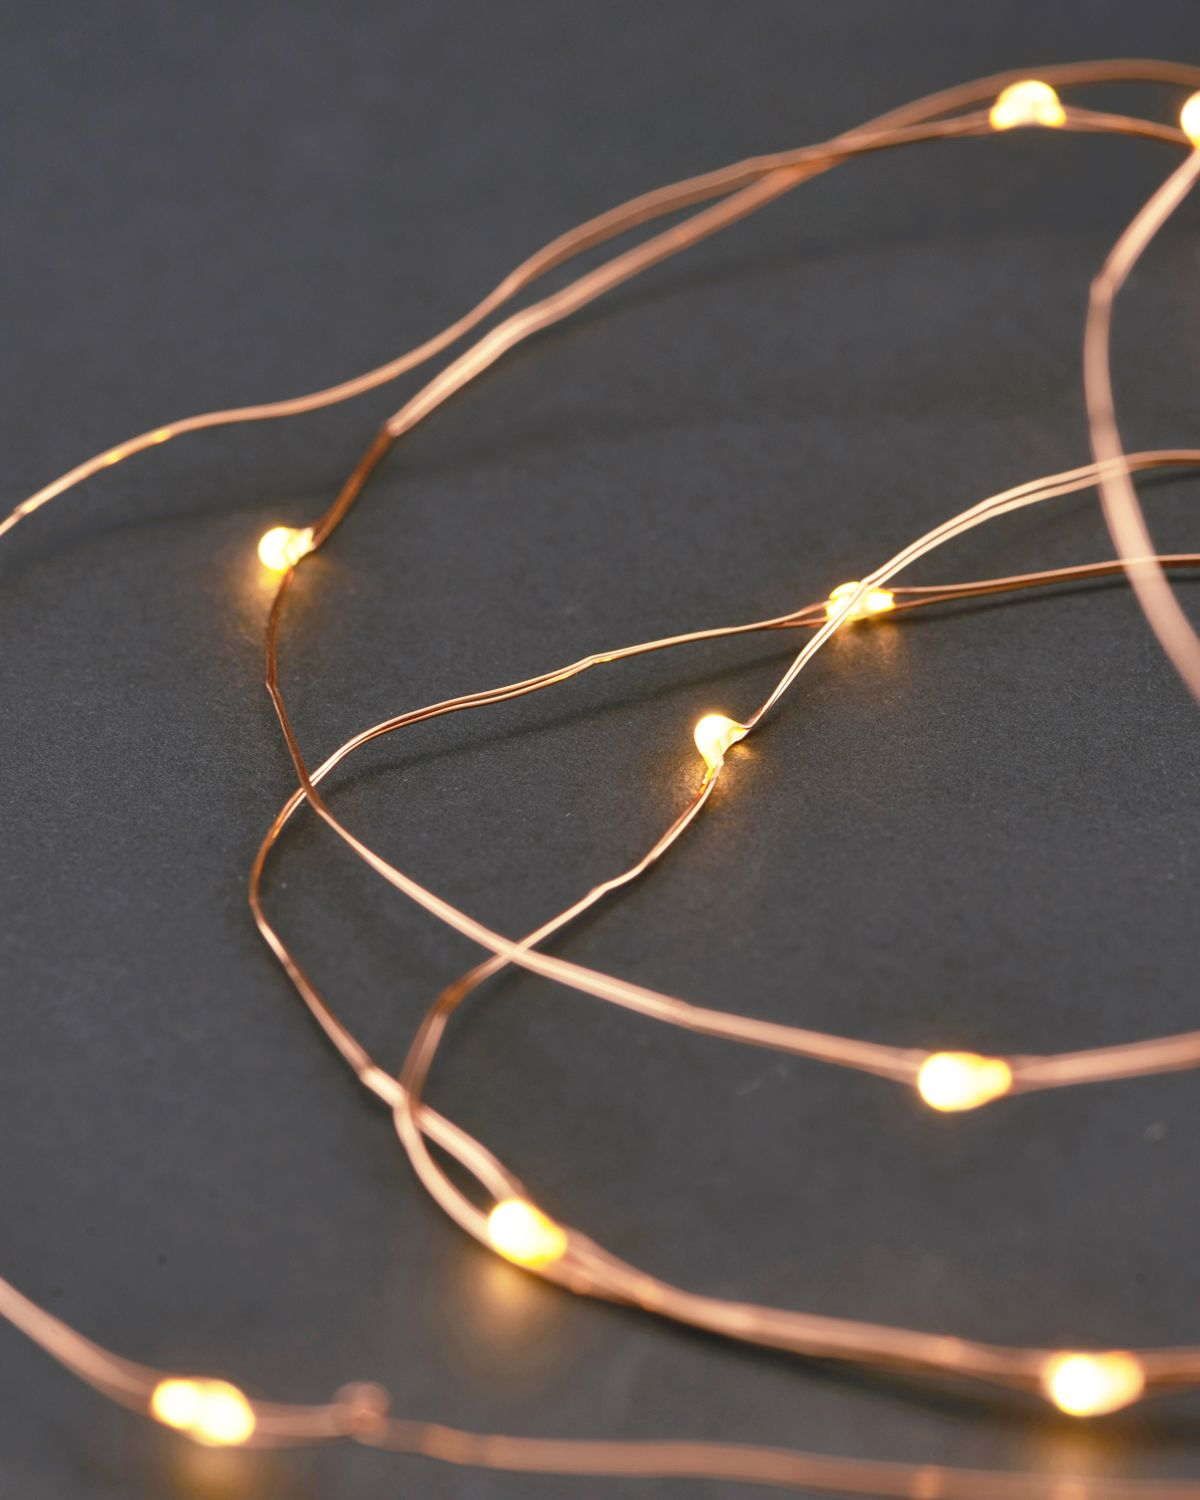 String lights, 10 m, Copper, 80 Lights, Bulb space: 10 cm, Batteries w. timer function, (Battery AA)